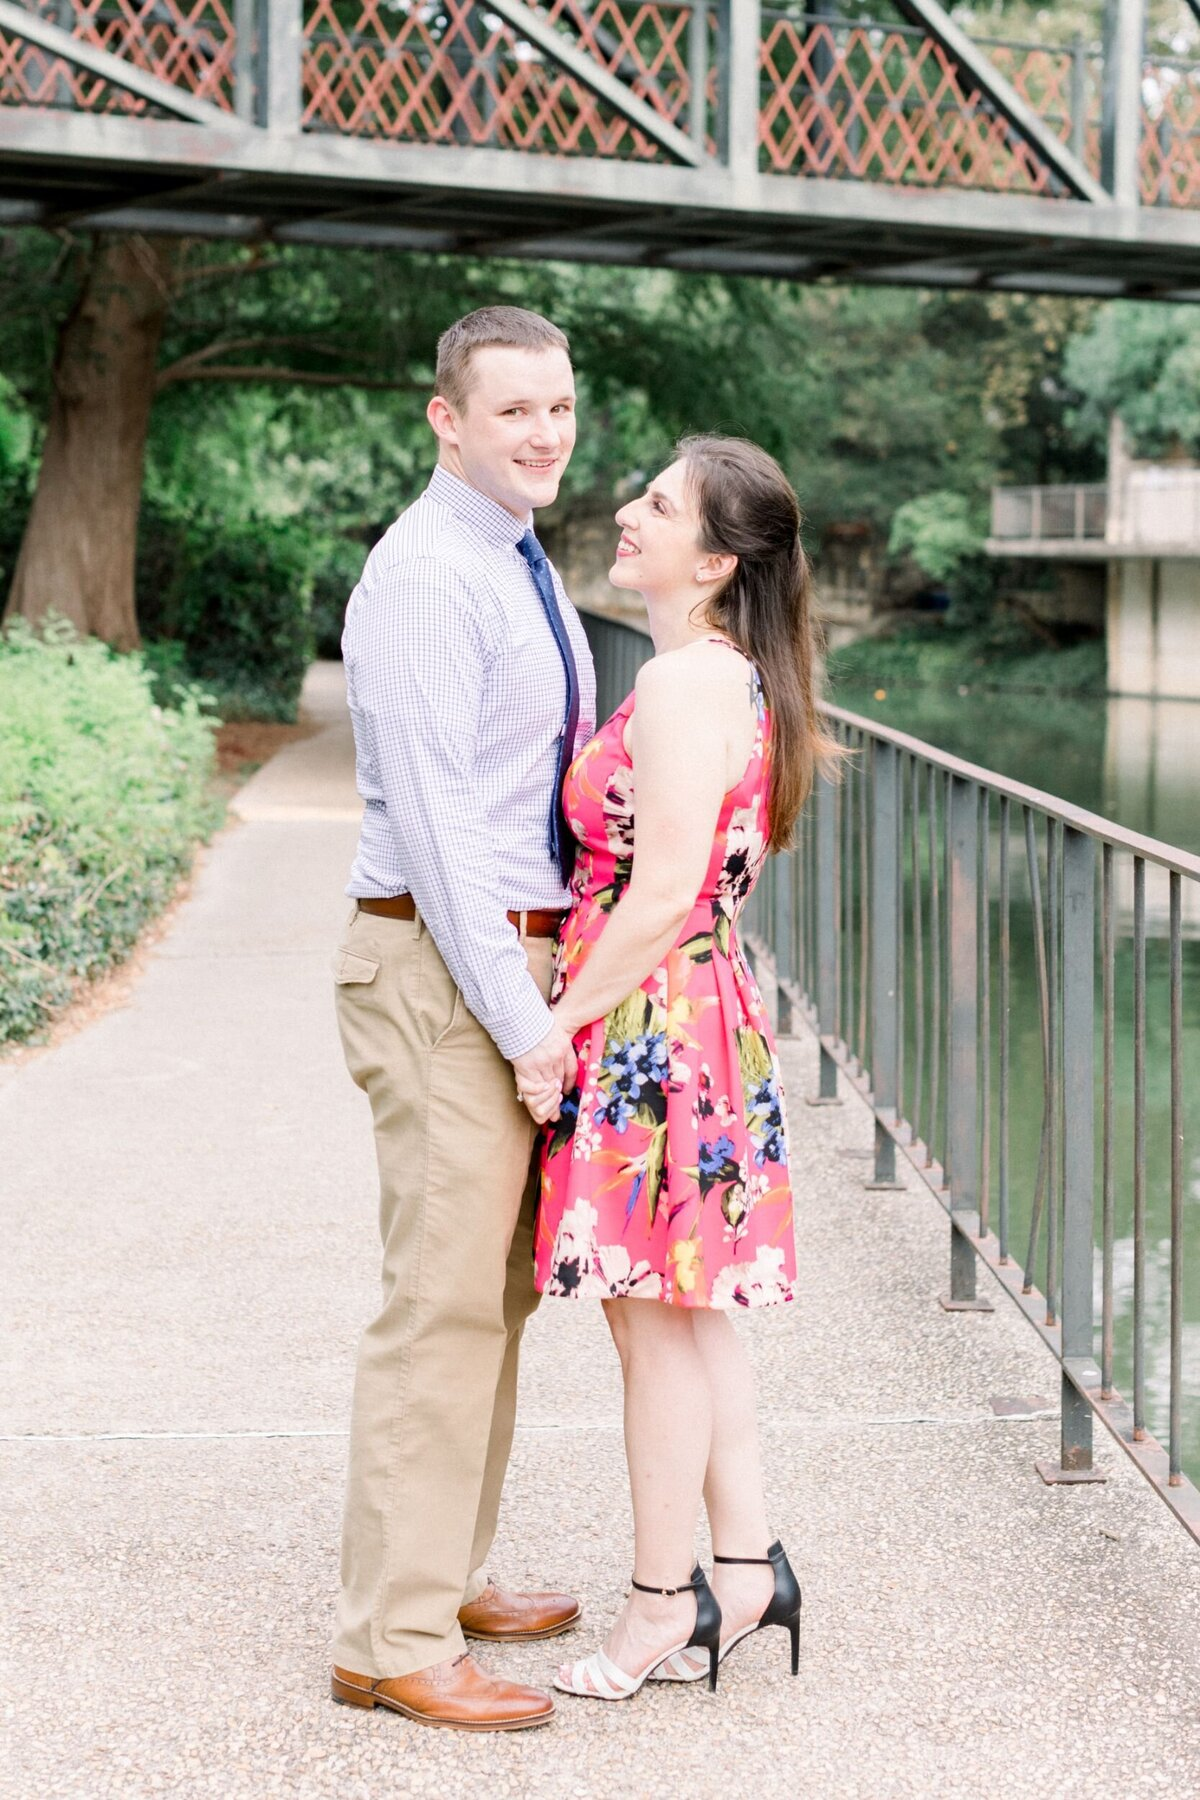 KingWilliamEngagement-AnnaKayPhotography-SanAntonioWeddingPhotographer-49